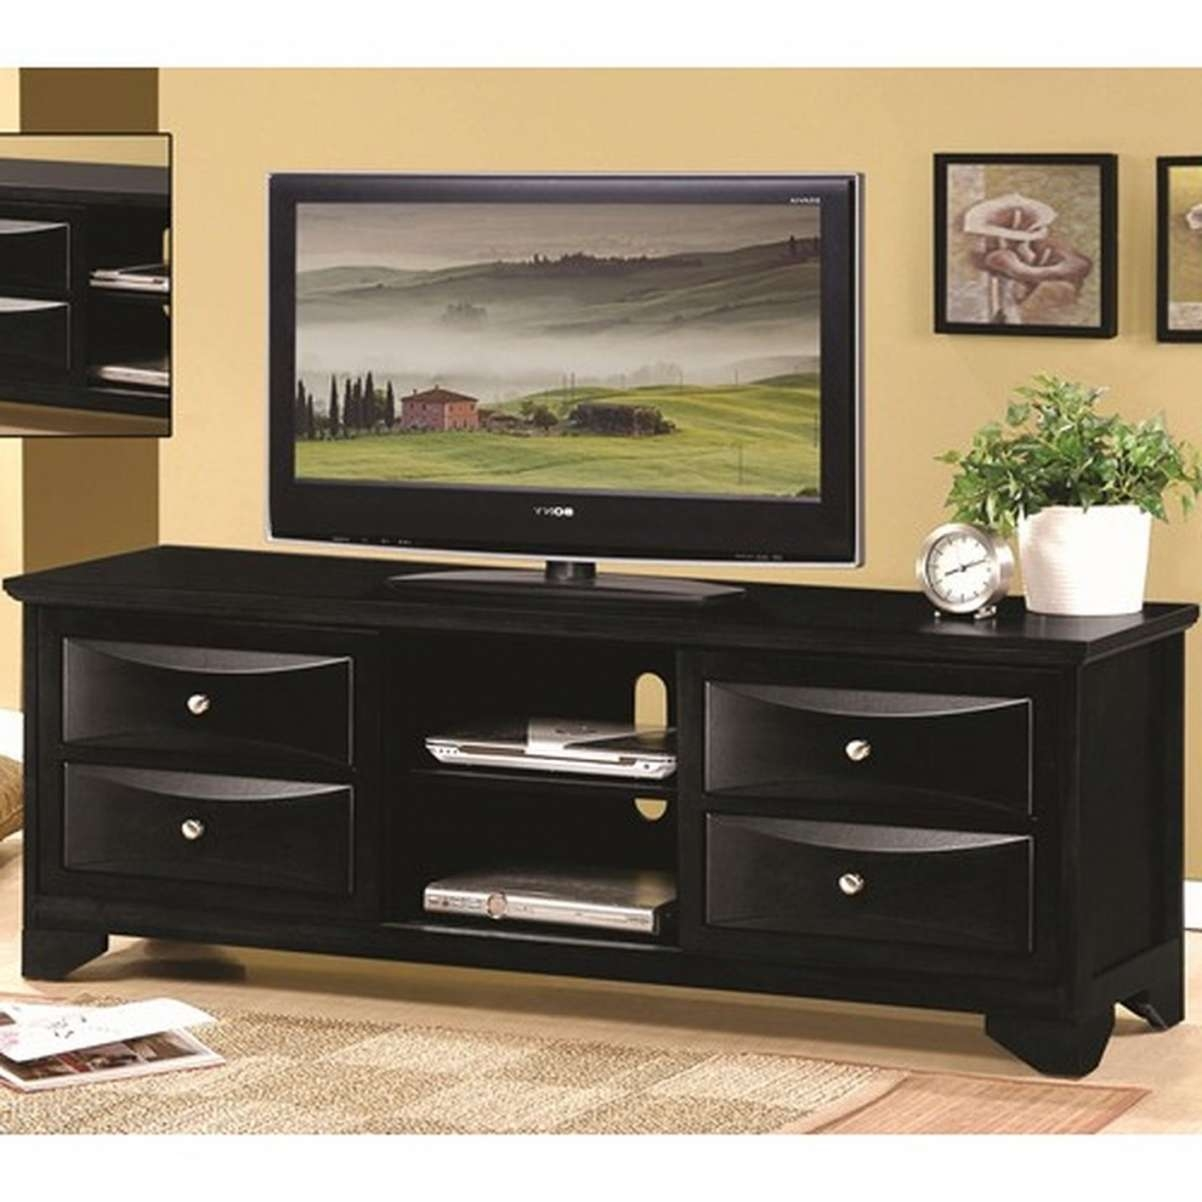 Luxury Tv Stands Big Lots Fresh – Best Furniture Gallery With Regard To Luxury Tv Stands (View 12 of 15)